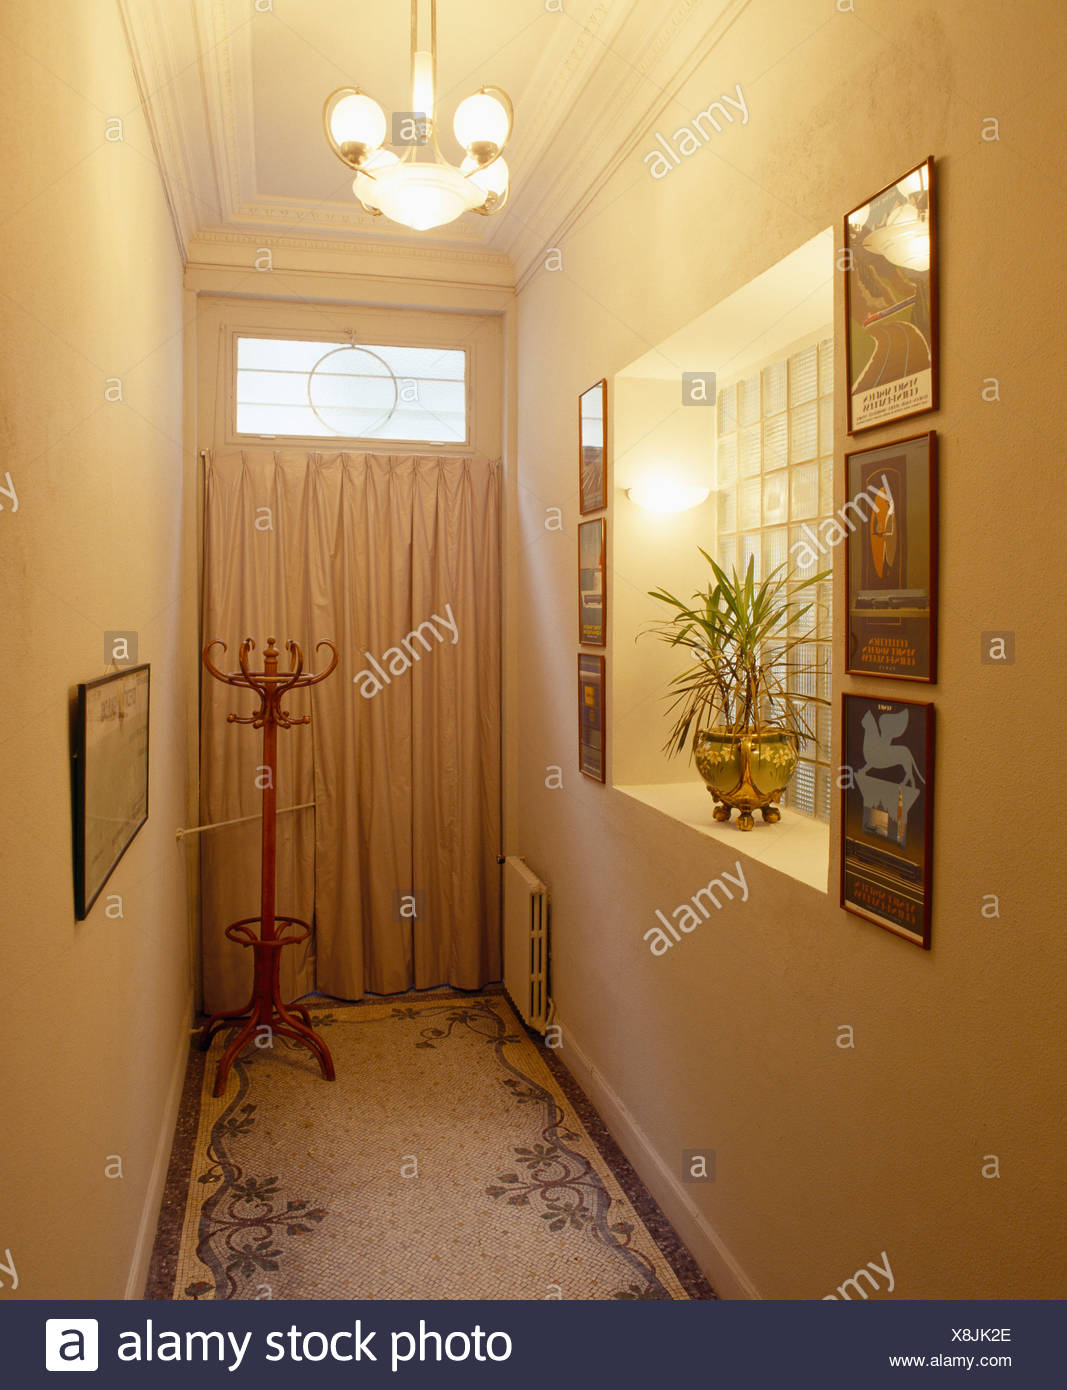 Mosaic tiled floor and recessed glass brick window in narrow hall with cream curtain on door - Stock Image